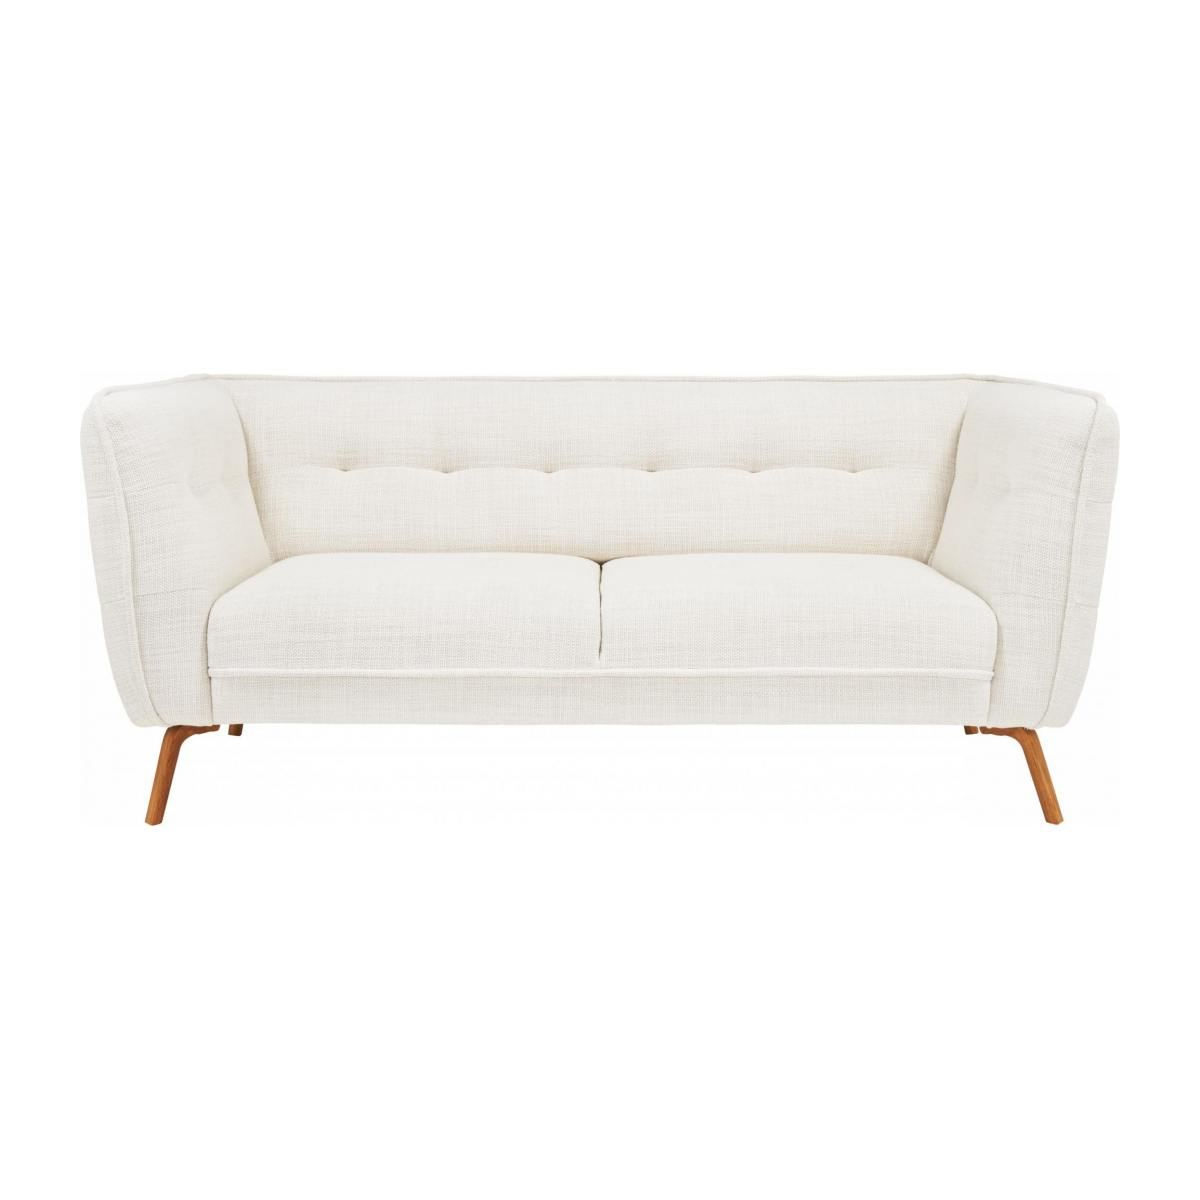 2 seater sofa in Fasoli fabric, snow white and oak legs n°1